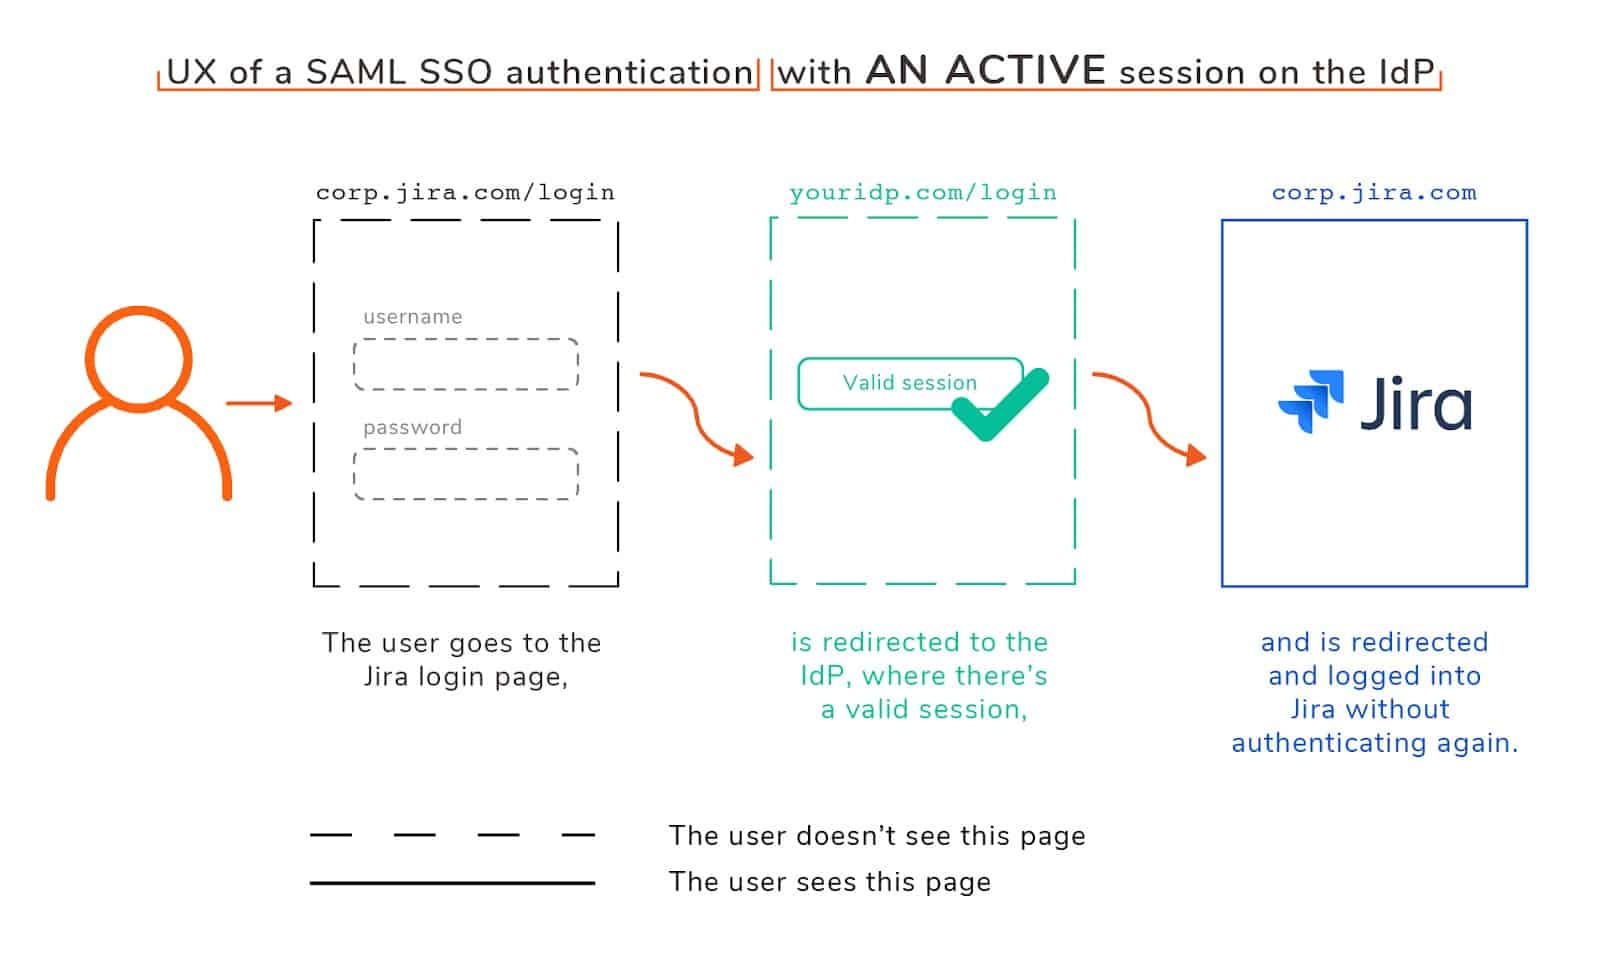 Jira SAML SSO authentication (an active session)